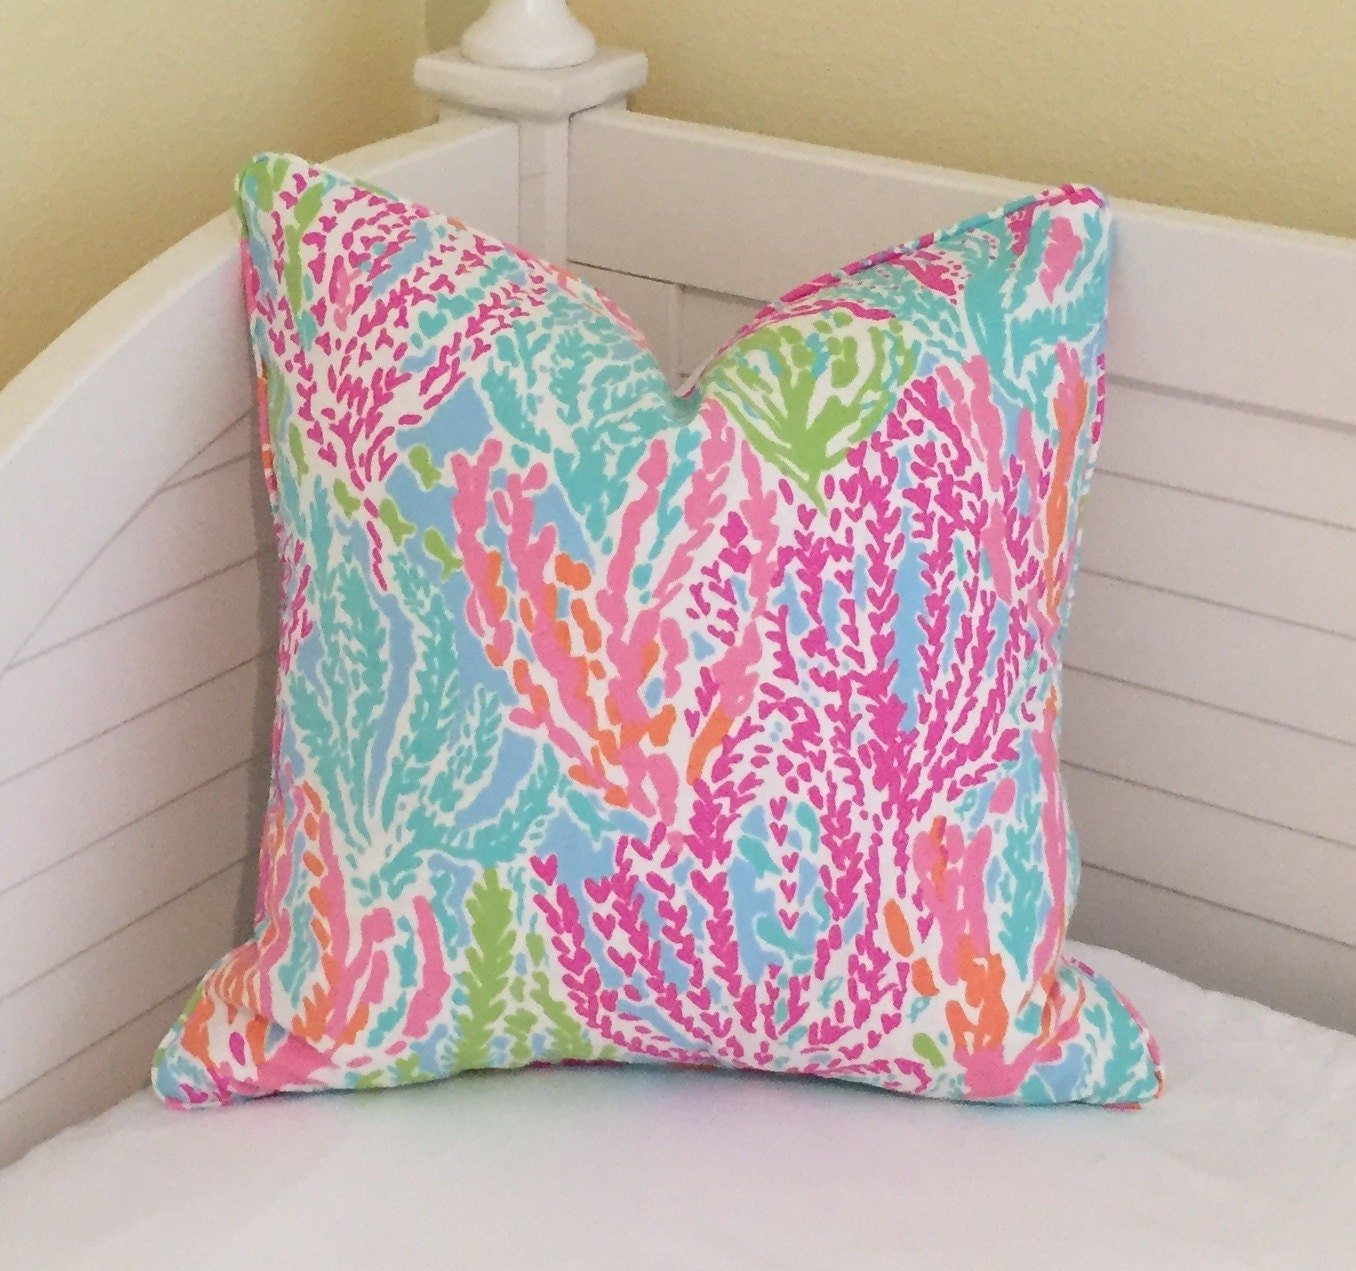 lilly pulitzer letu0027s cha cha in tikishorely blue designer pillow cover with self welting square euro and lumbar sizes